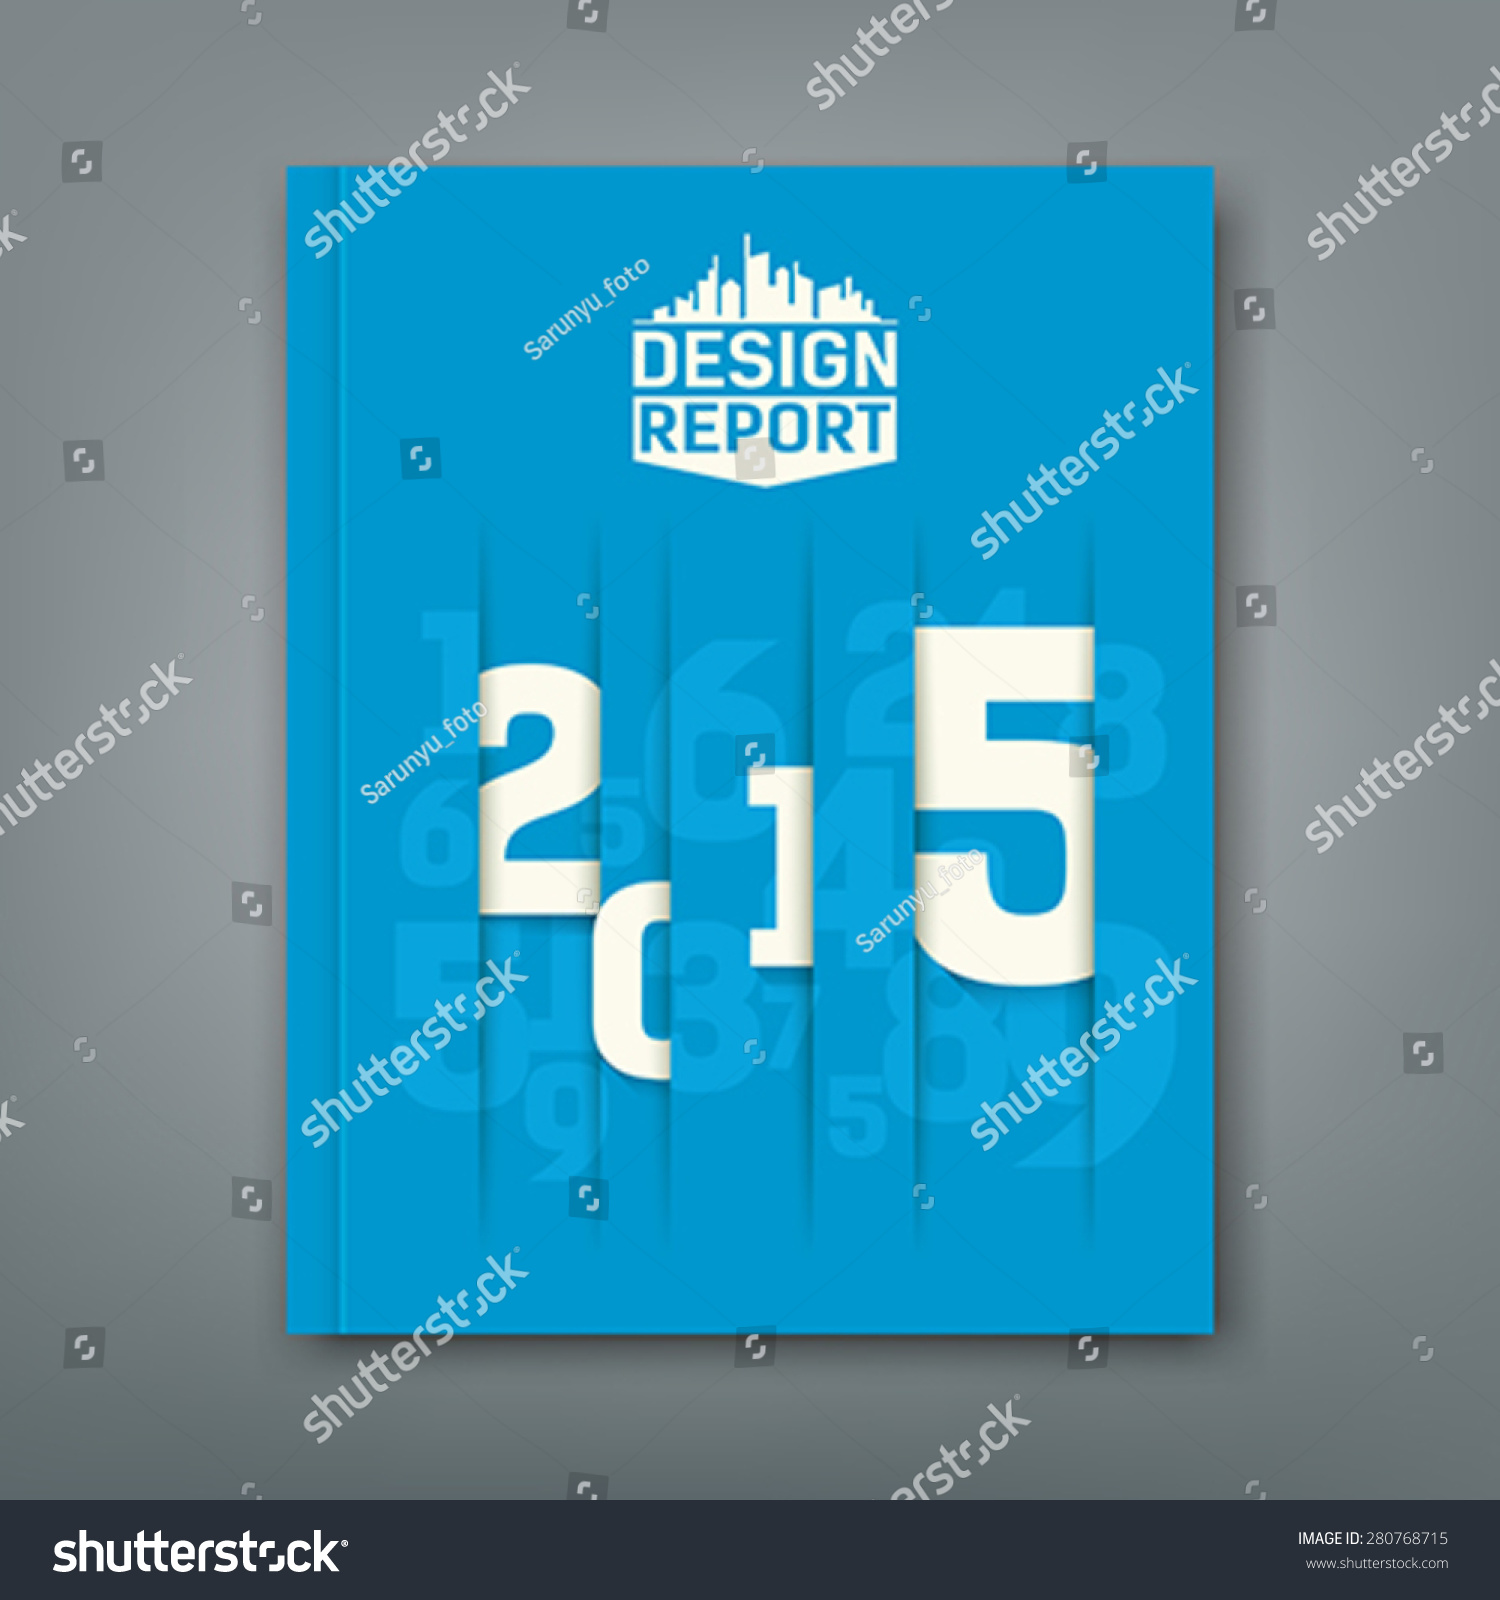 cover annual report numbers design stock vector  cover annual report numbers 2015 design on blue background vector illustration